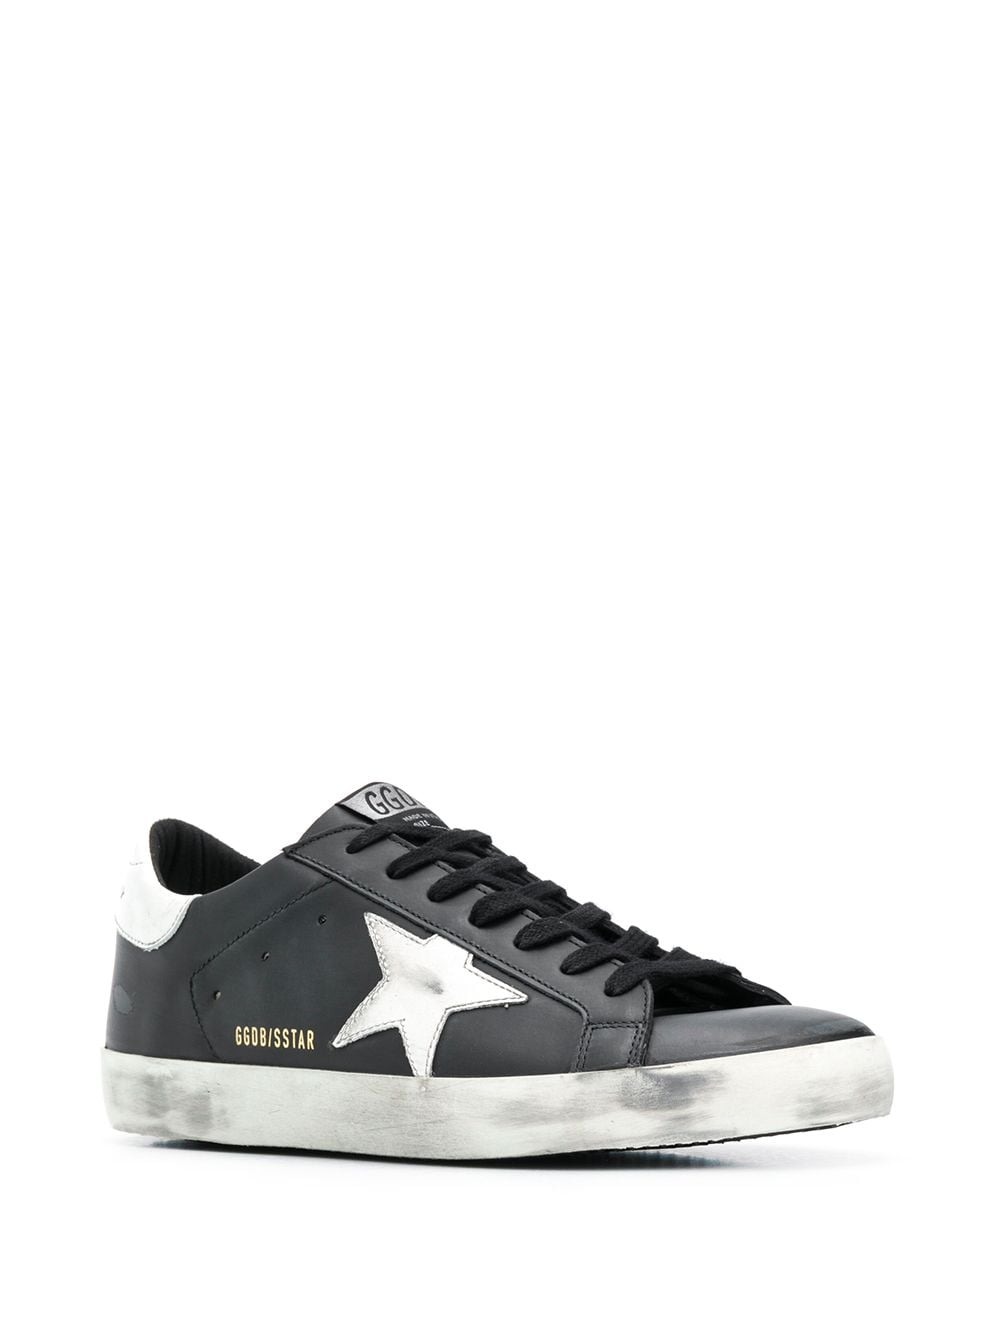 Mens Superstar Sneakers 3/4